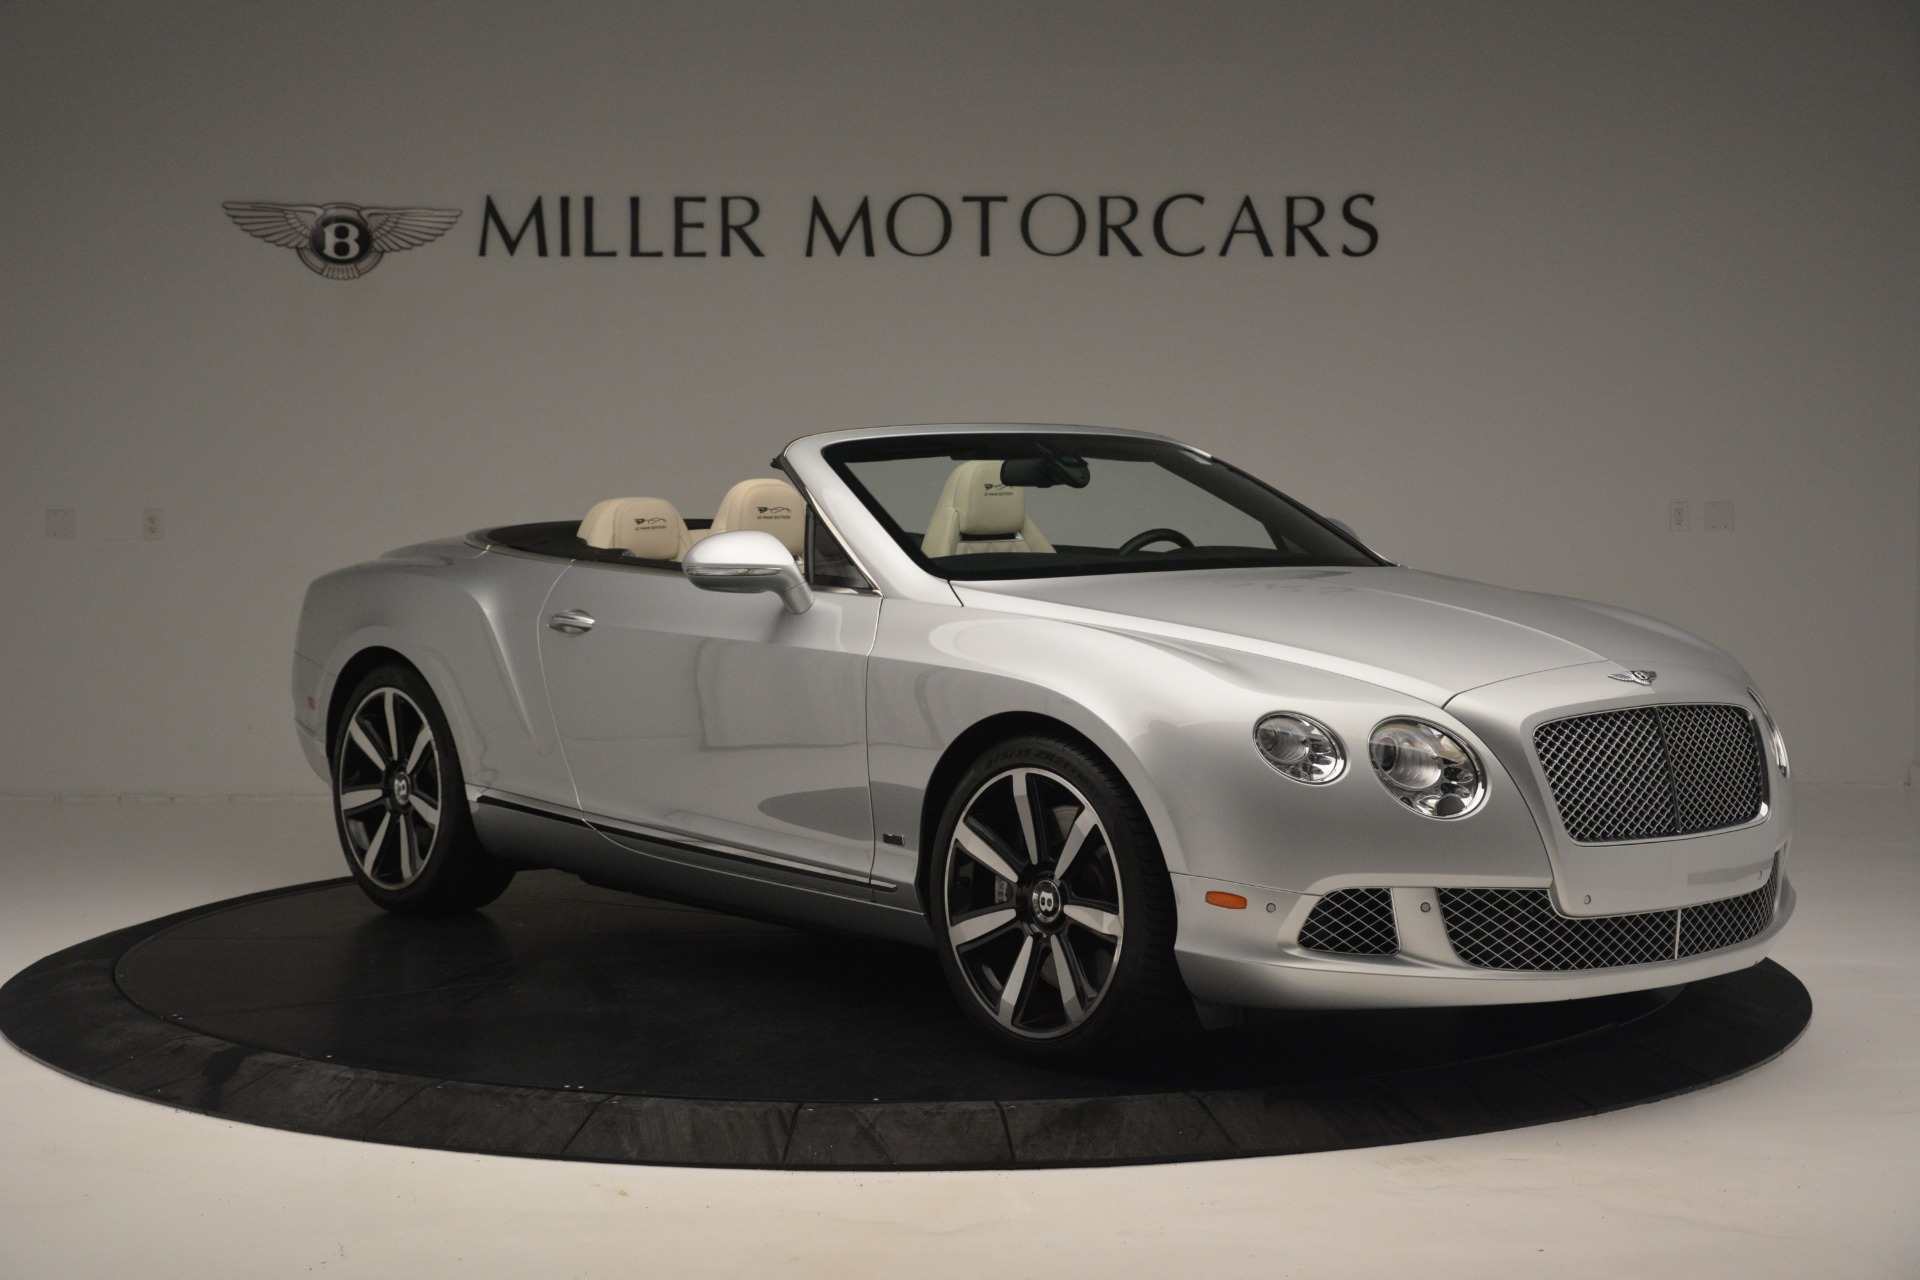 Used 2013 Bentley Continental GT W12 Le Mans Edition For Sale In Greenwich, CT 2519_p8